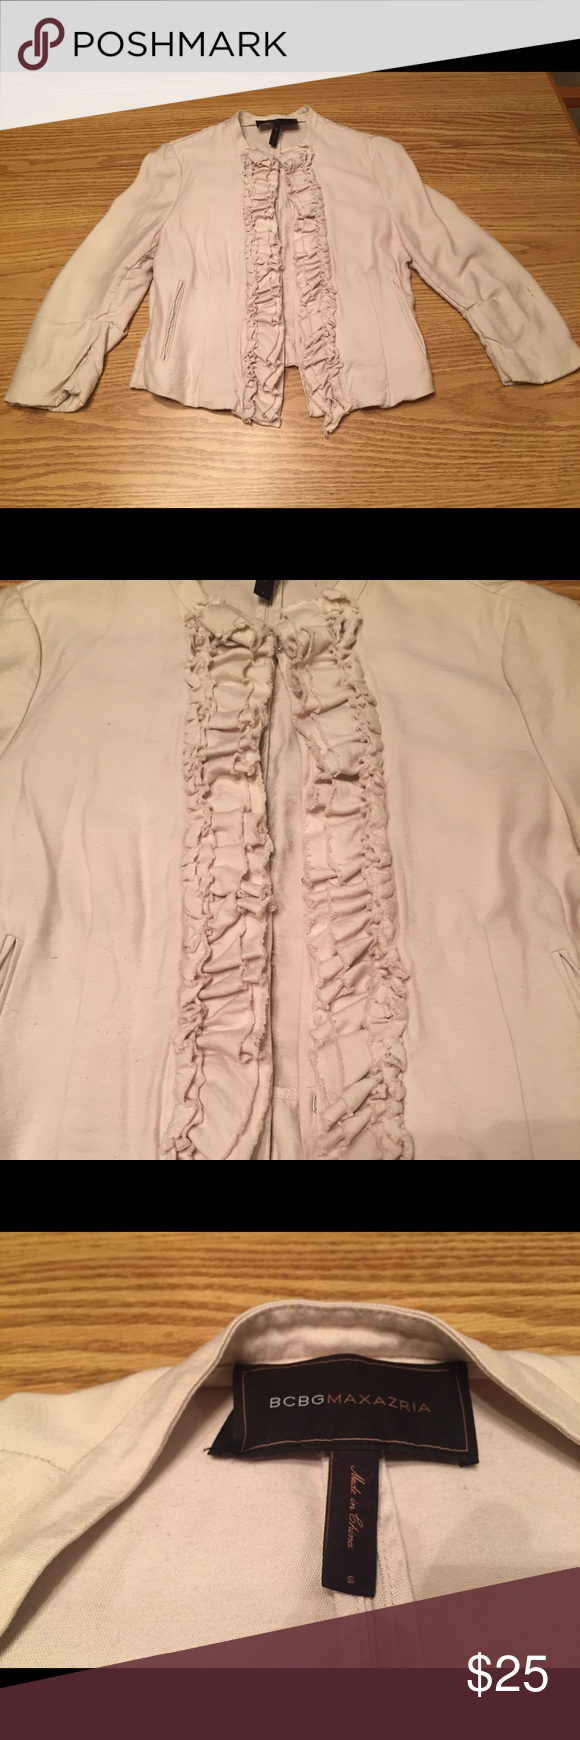 BCBG cropped ruffle blazer BCBG Cream colored cropped ruffle blazer. Hook enclosures. Super soft and comfy. Small spot on left arm as shown in photo. Hard to notice and will probably wash out. BCBGeneration Jackets & Coats Blazers